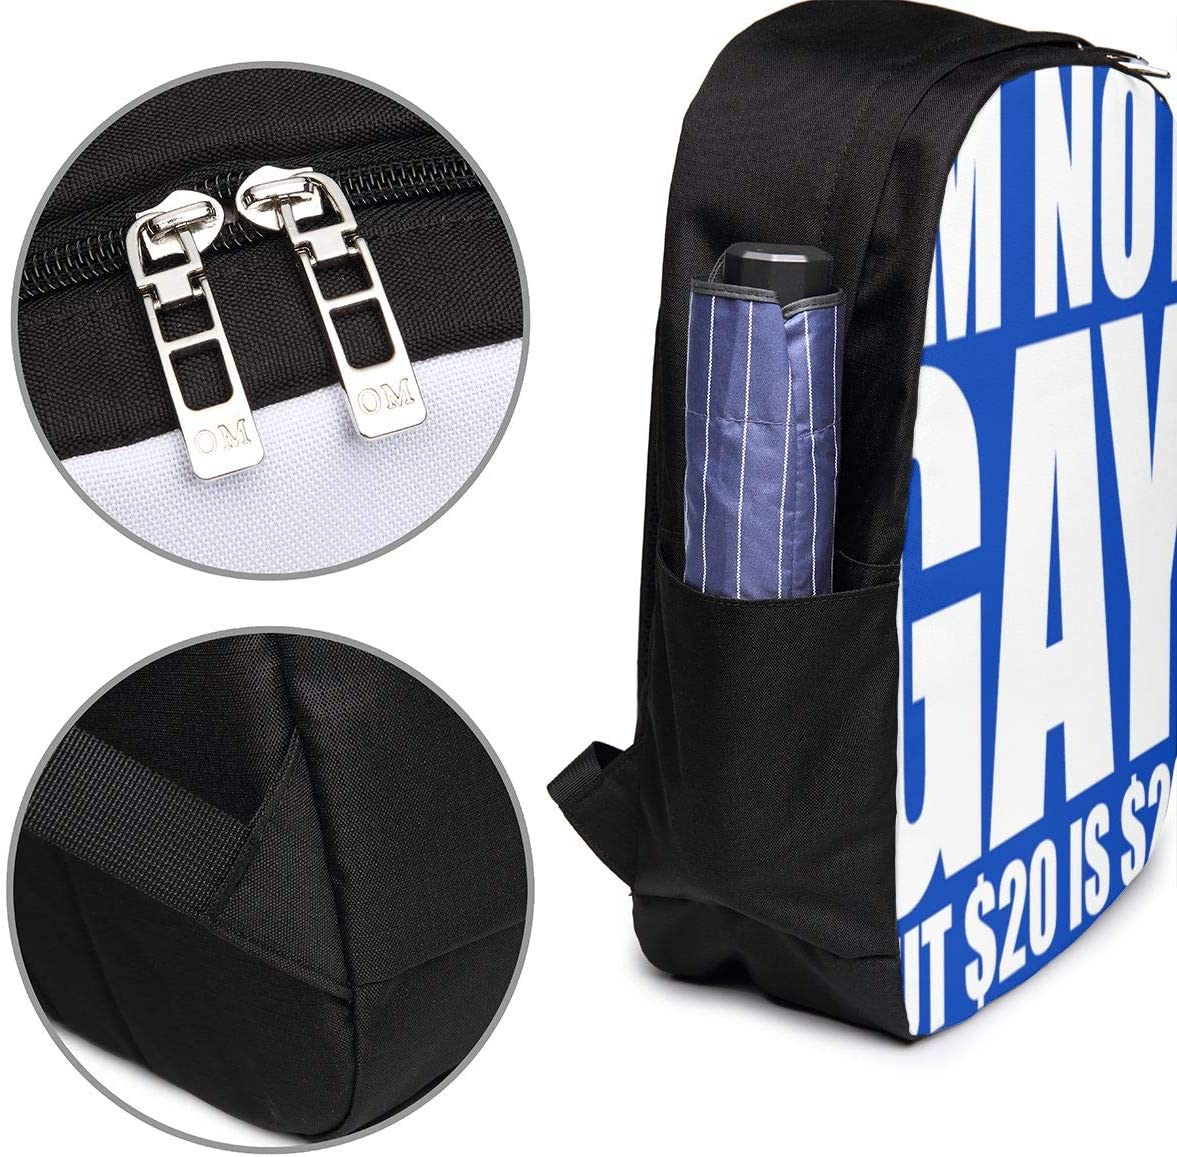 Im Not Gay But $20 is $20 USB Backpack 17 Inches High-Capacity for Working